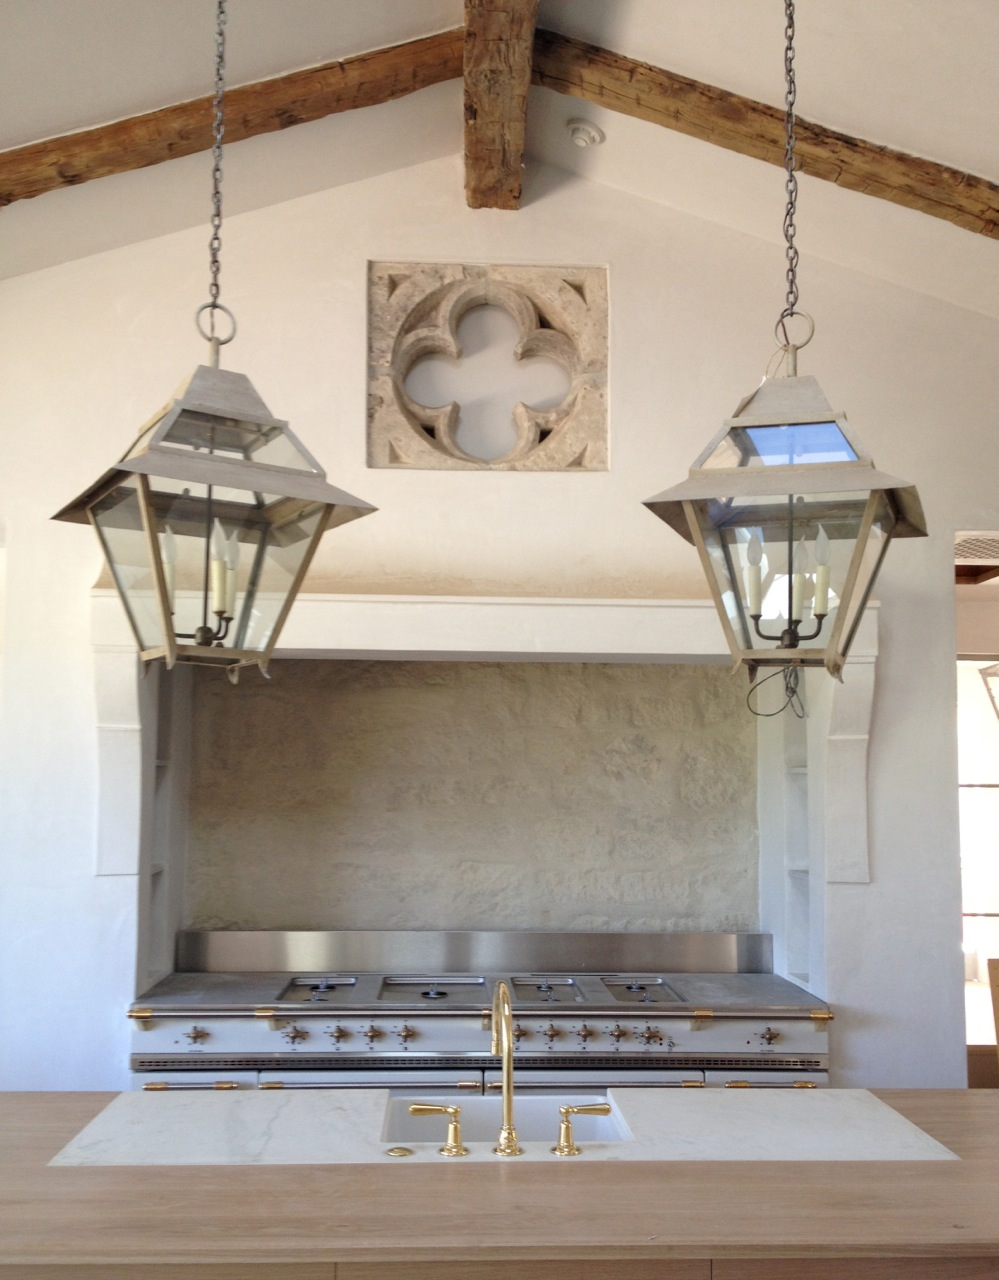 patina farm update kitchen lights plumbing fixtures and marble farmhouse kitchen lights IMG